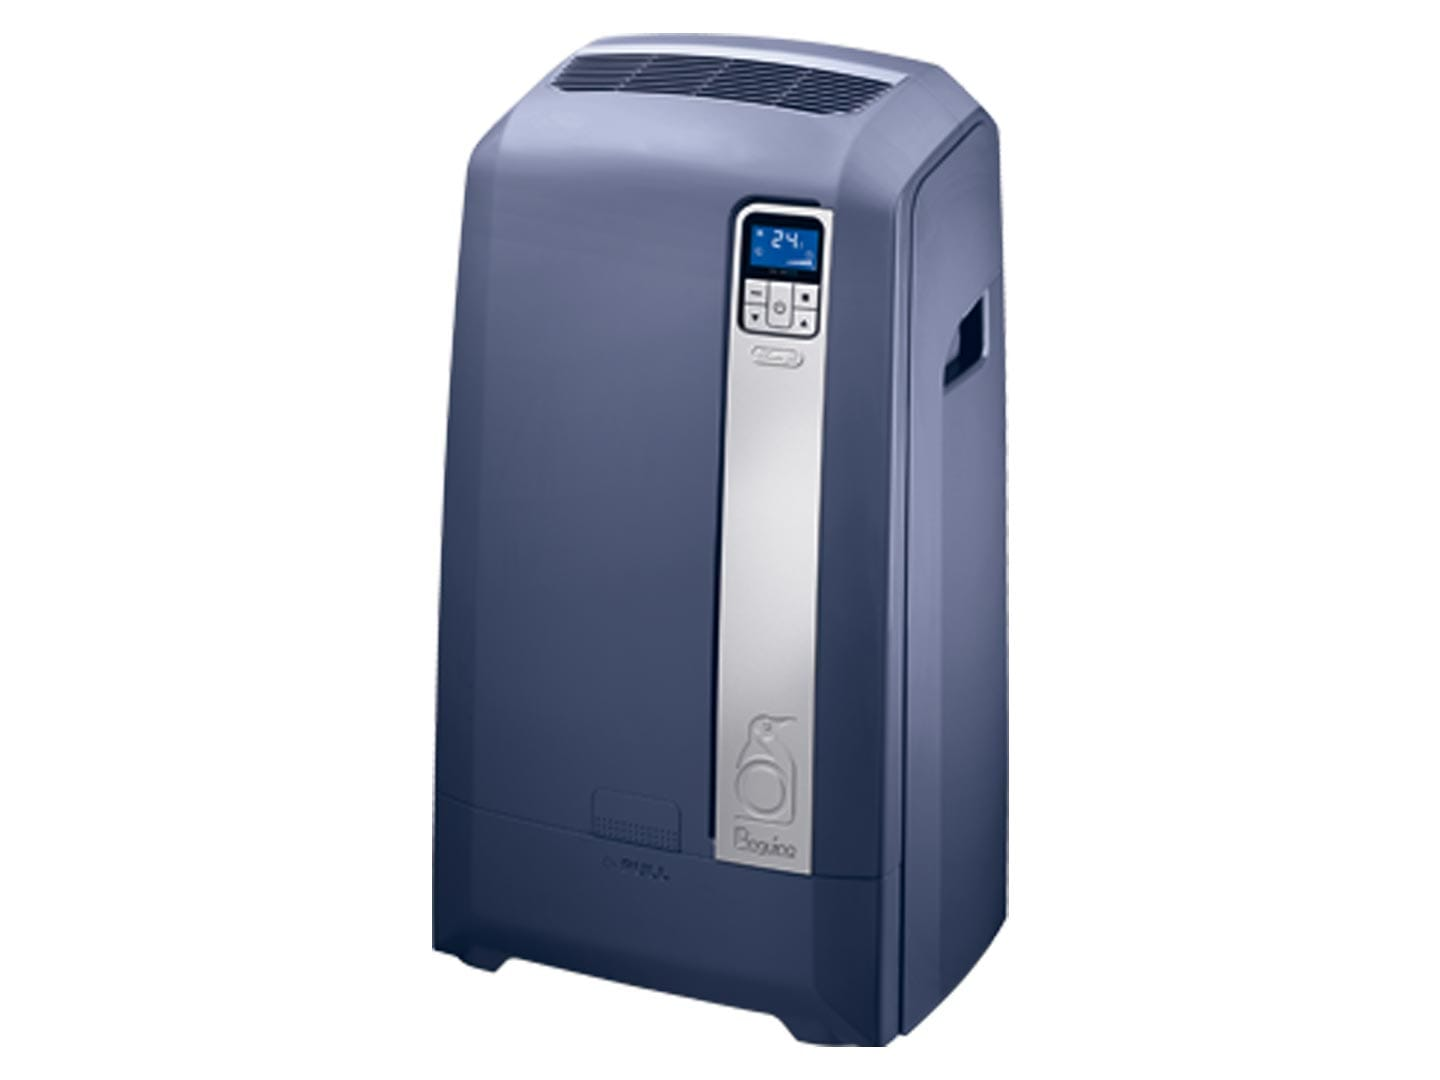 #30629B Trova Il Tuo Prodotto De'Longhi Italia Highly Rated 12069 Global Portable Air Conditioner wallpapers with 1440x1080 px on helpvideos.info - Air Conditioners, Air Coolers and more